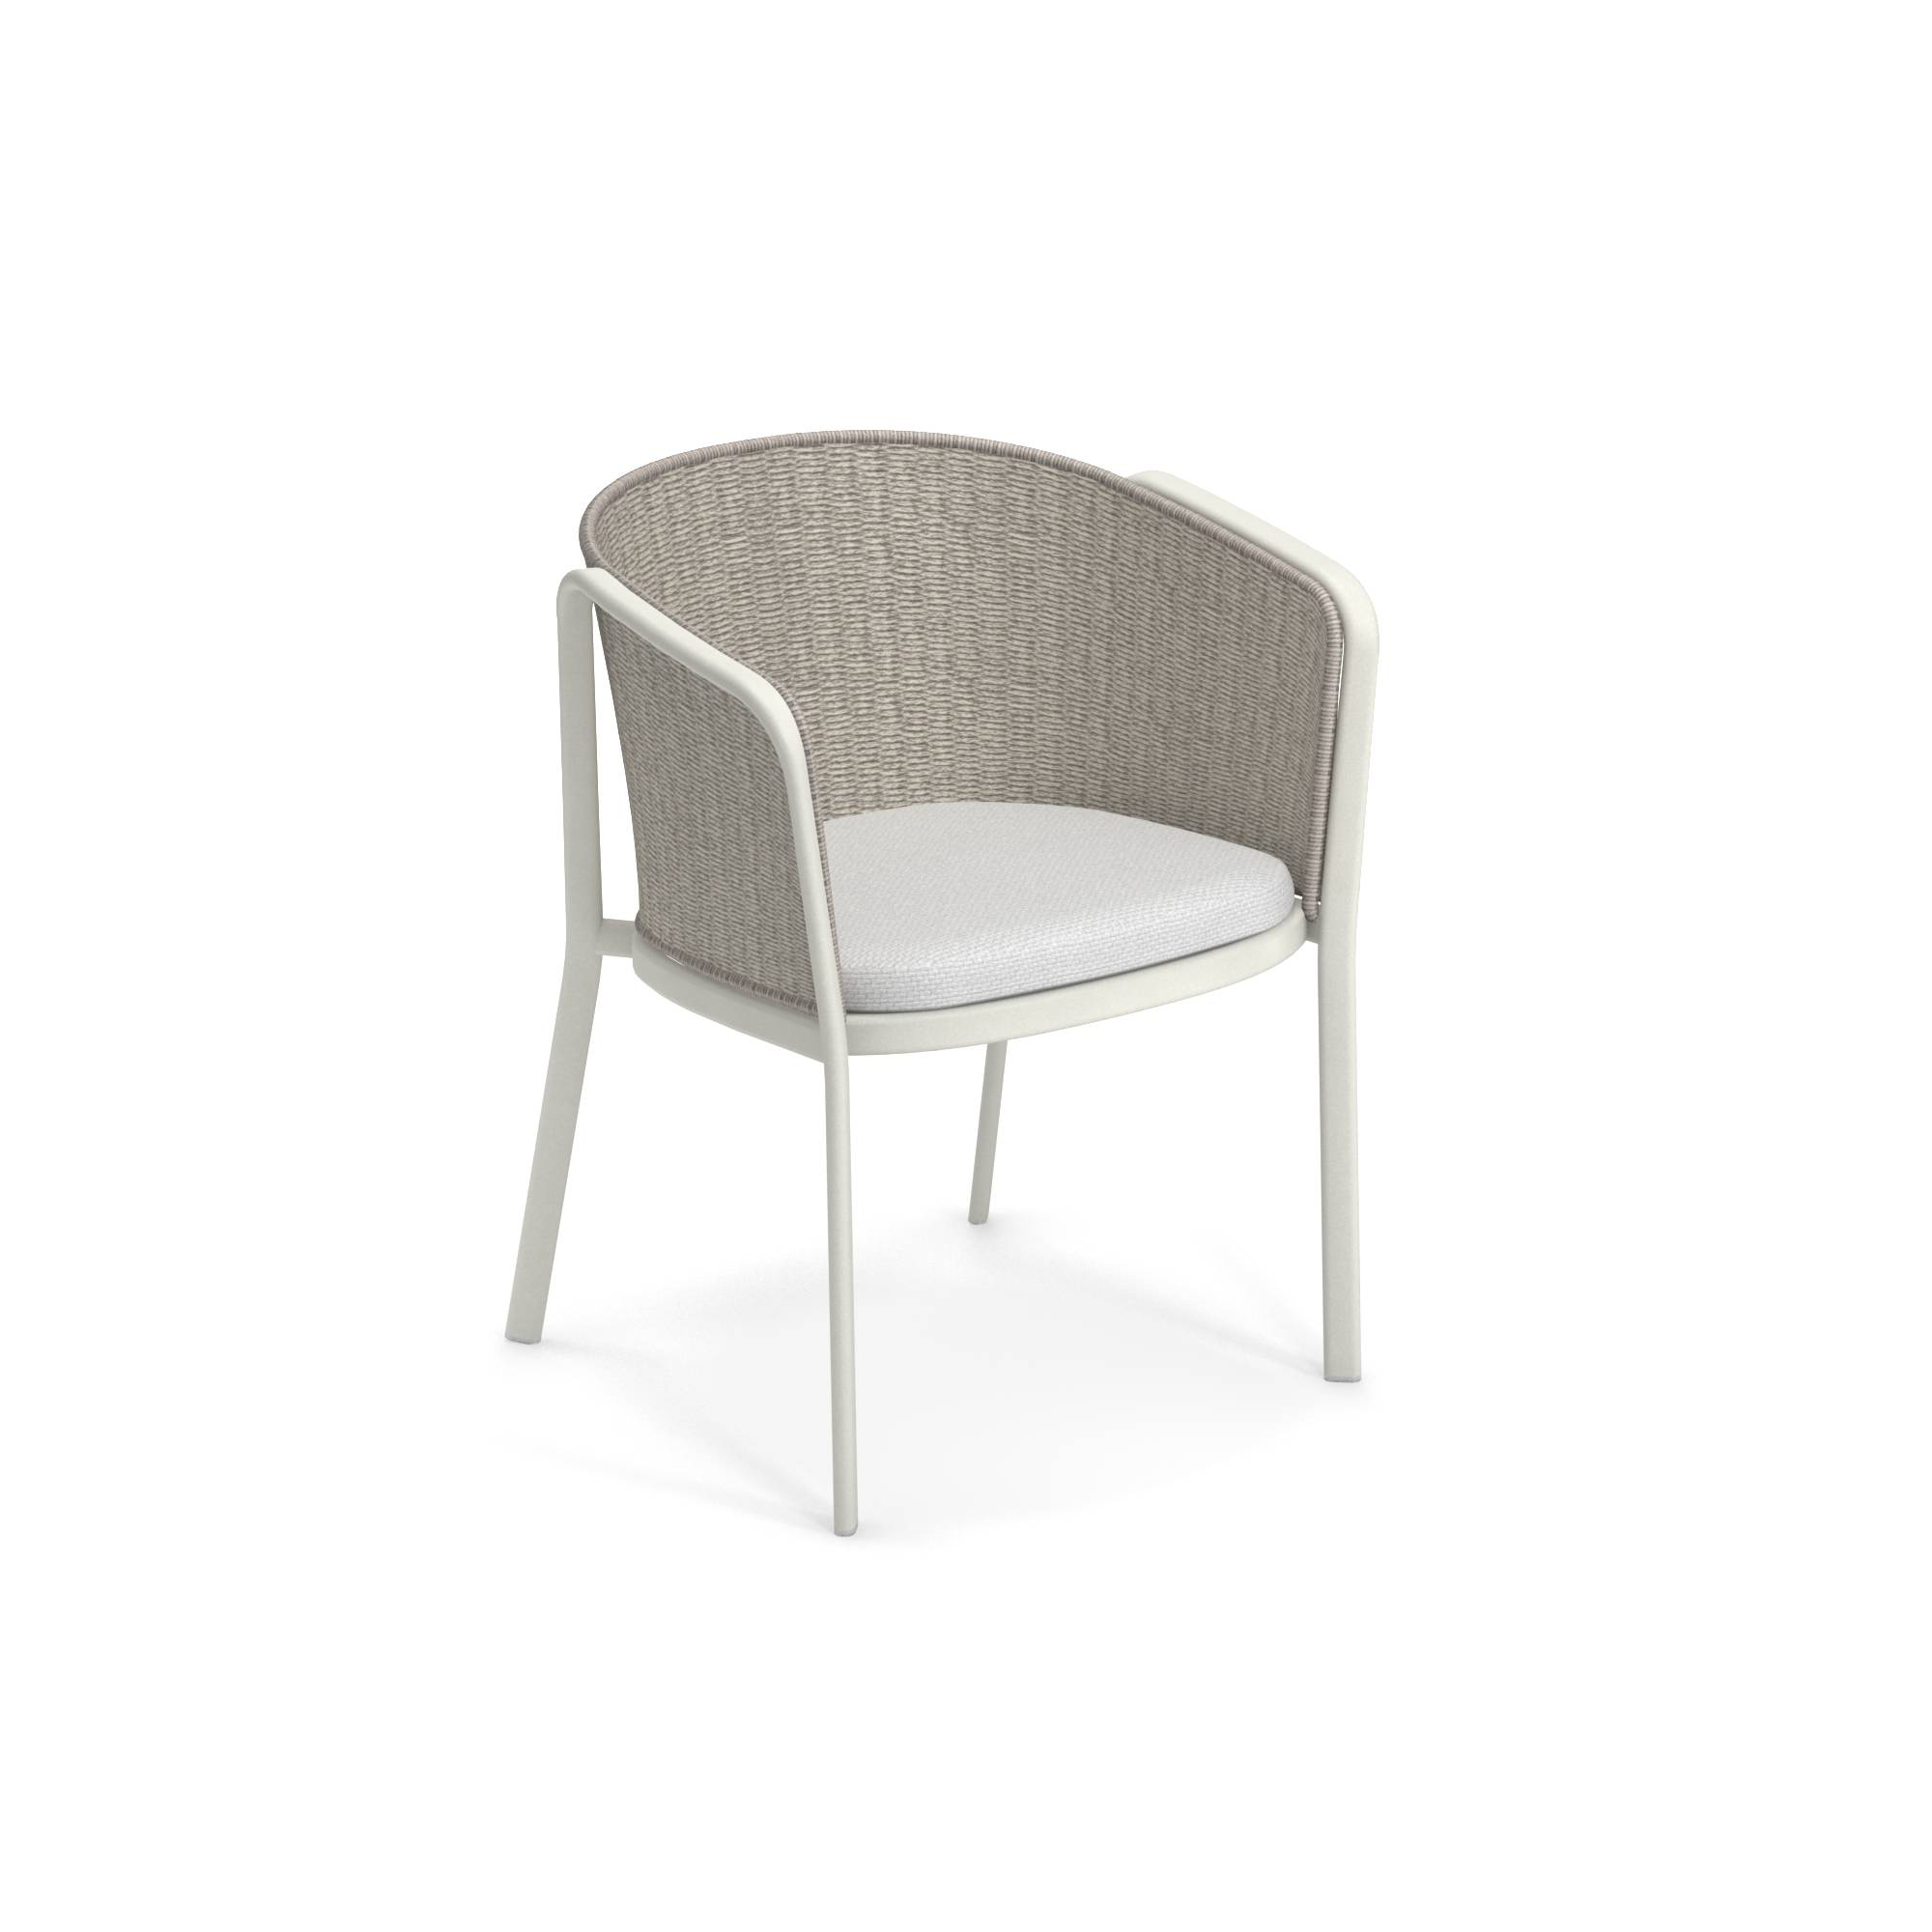 Garden Armchair / Outside In Aluminium, Polyester, Synthetic Pertaining To Leia Polyester Armchairs (View 11 of 15)